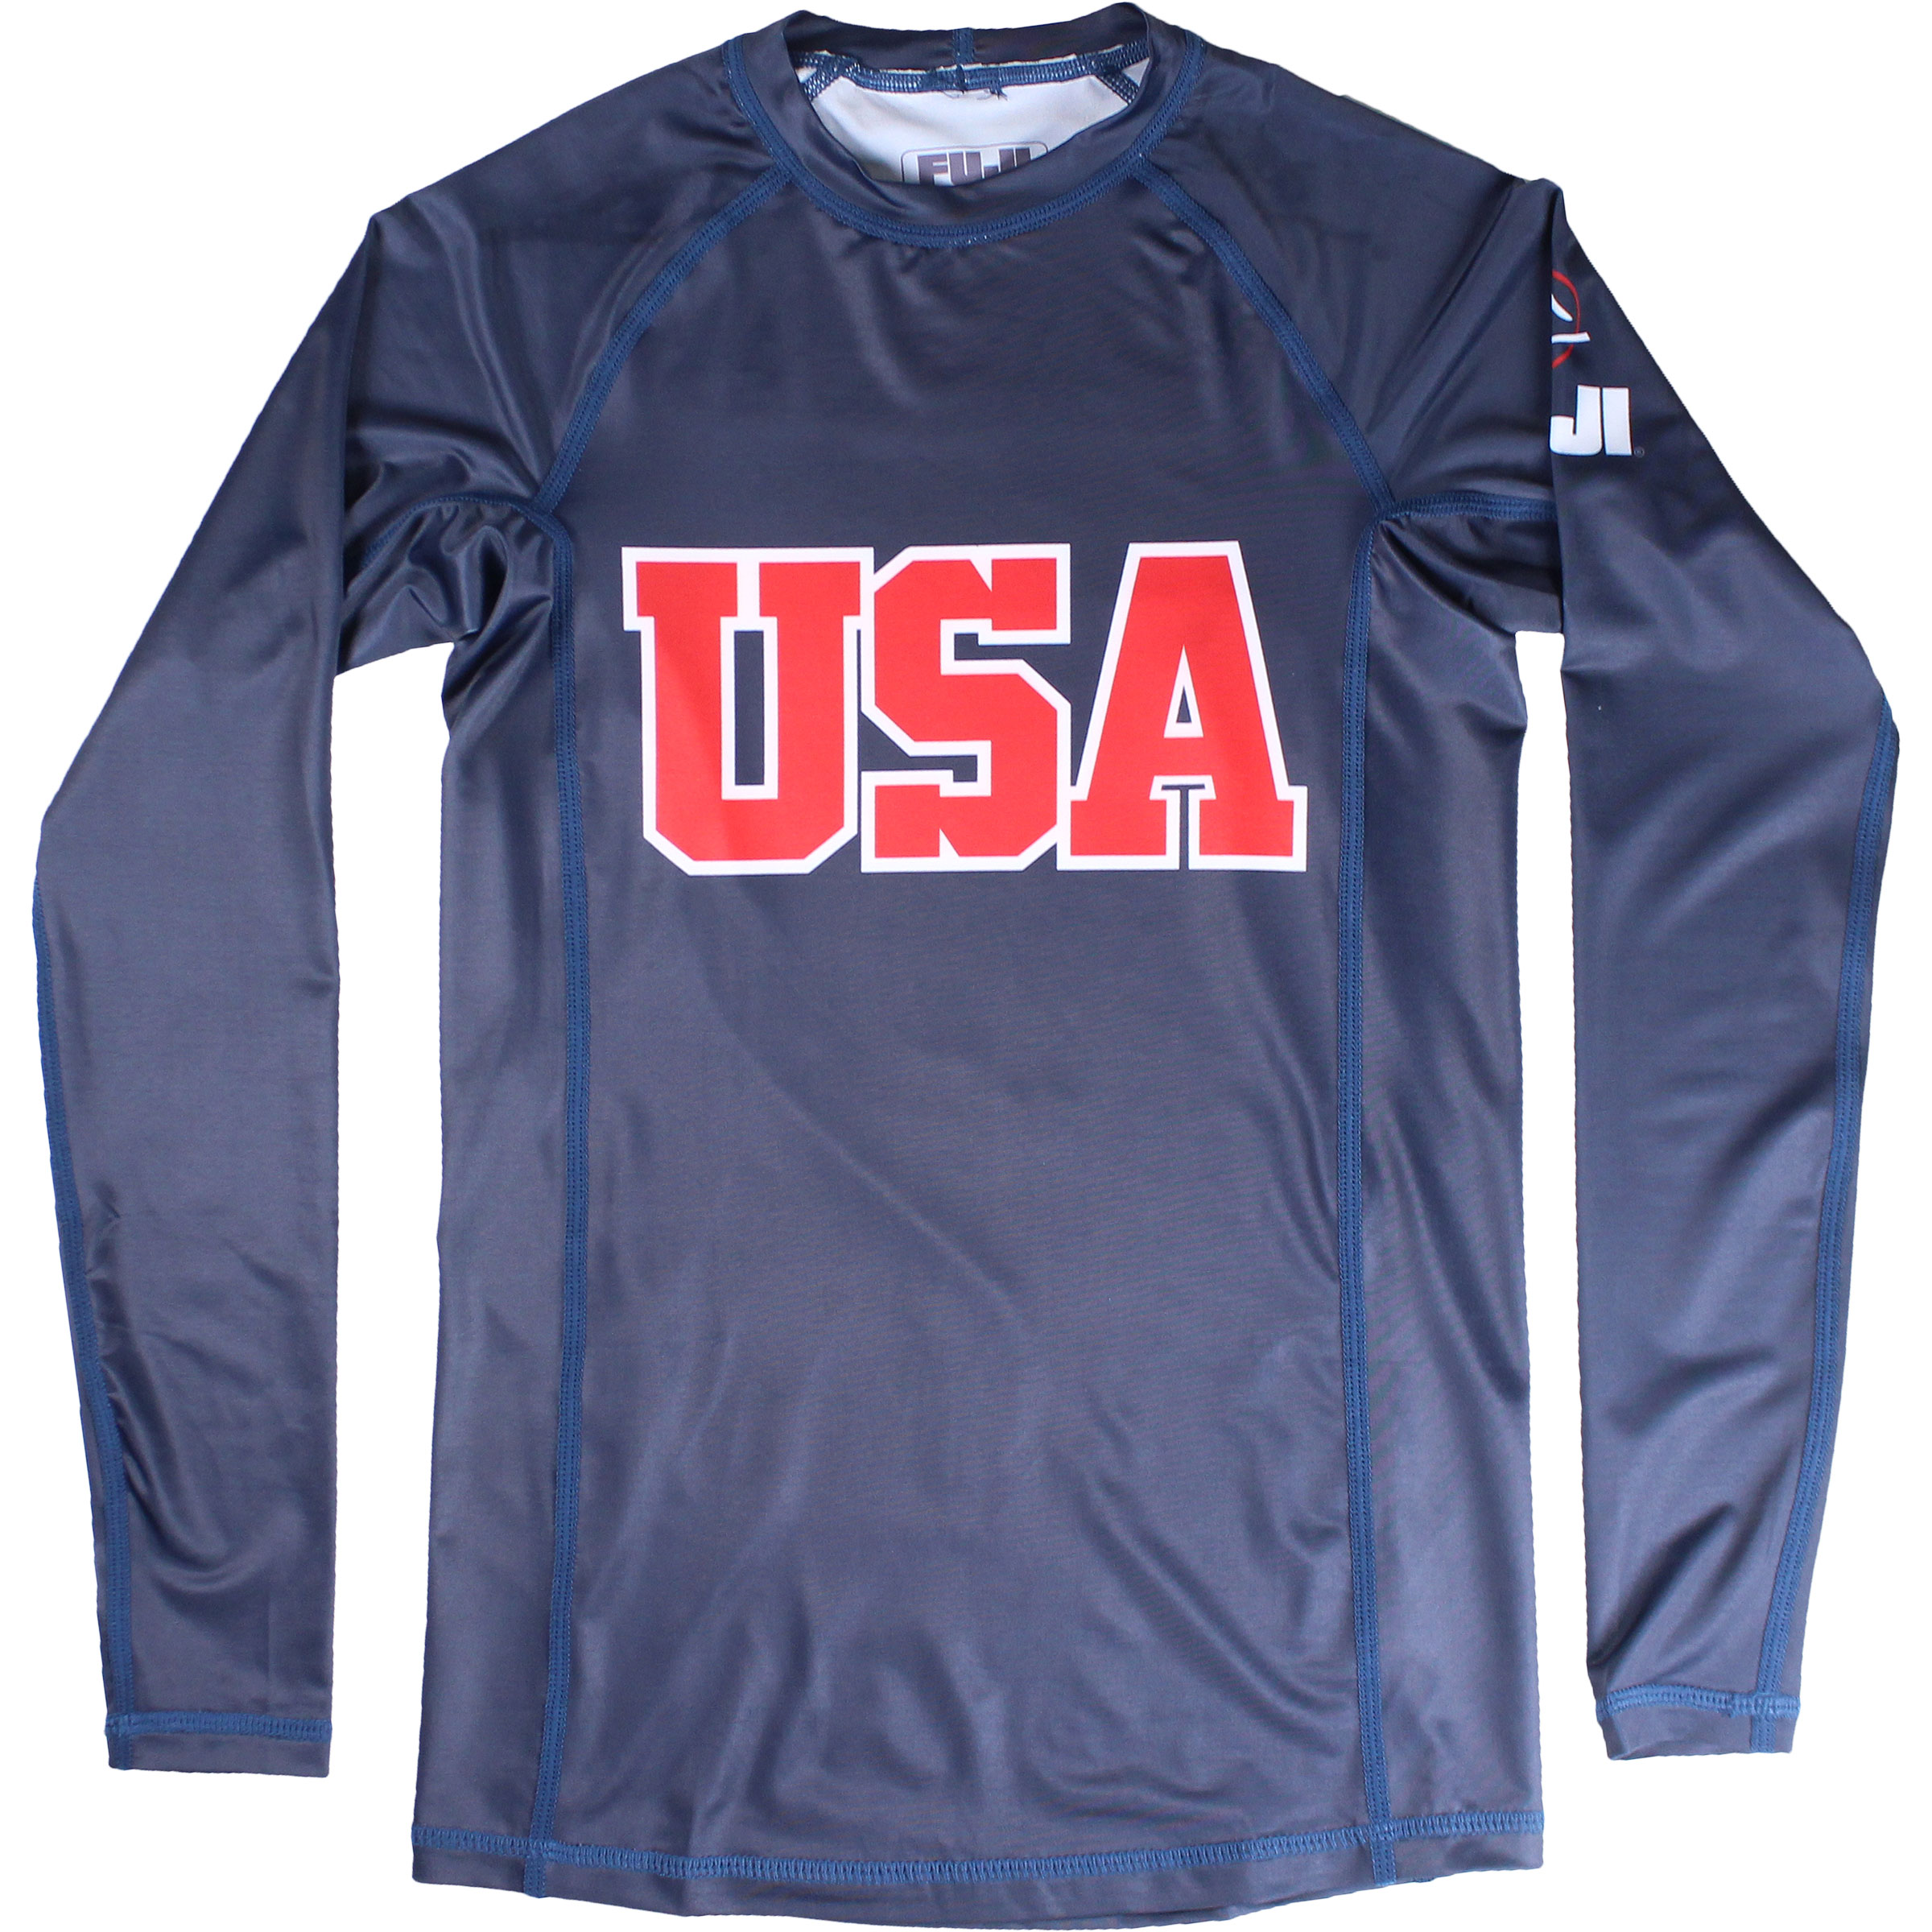 Fuji Youth USA Rashguard